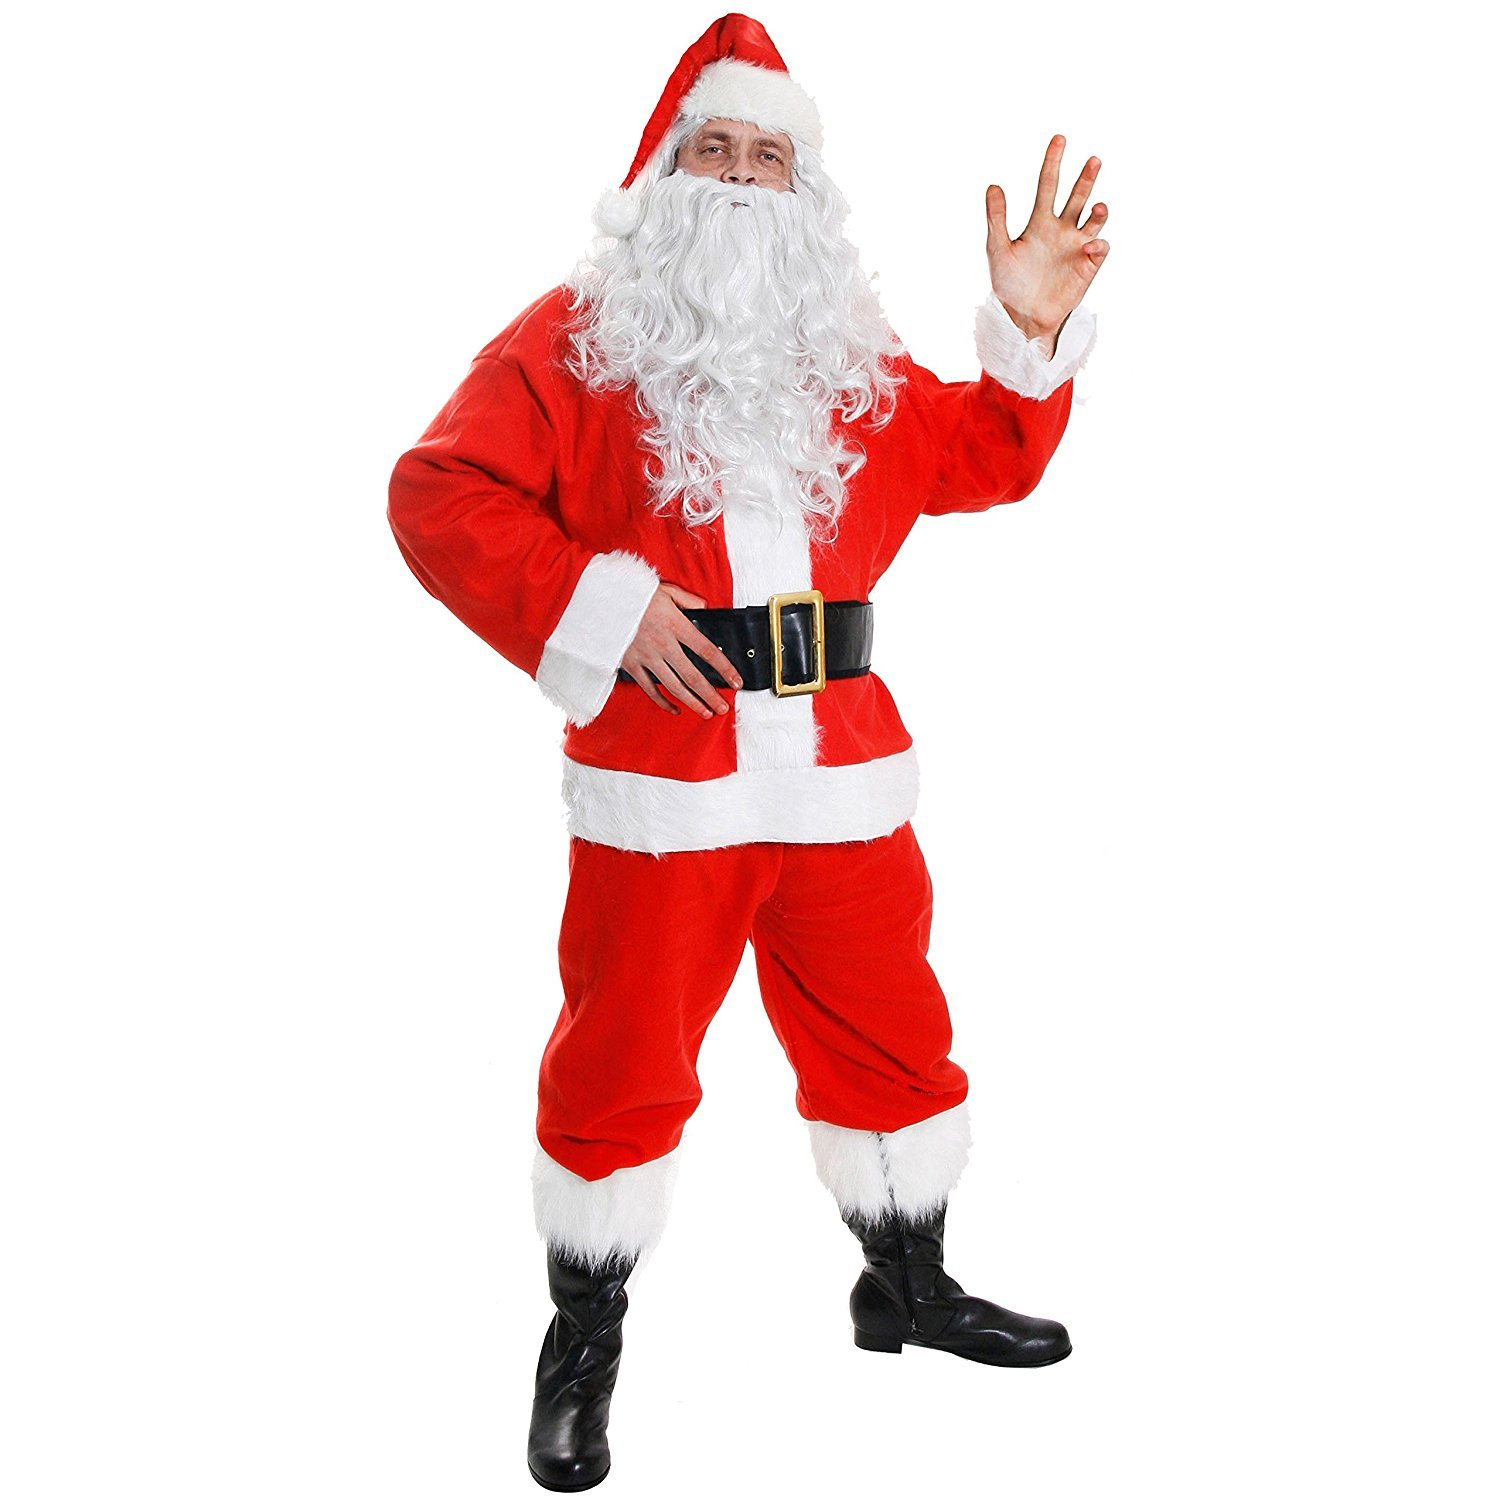 0a453ab8c97 7 PIECE DELUXE SANTA CLAUS FANCY DRESS COSTUME - RED VELOUR SANTA JACKET  WITH FAUX FUR TRIMMING